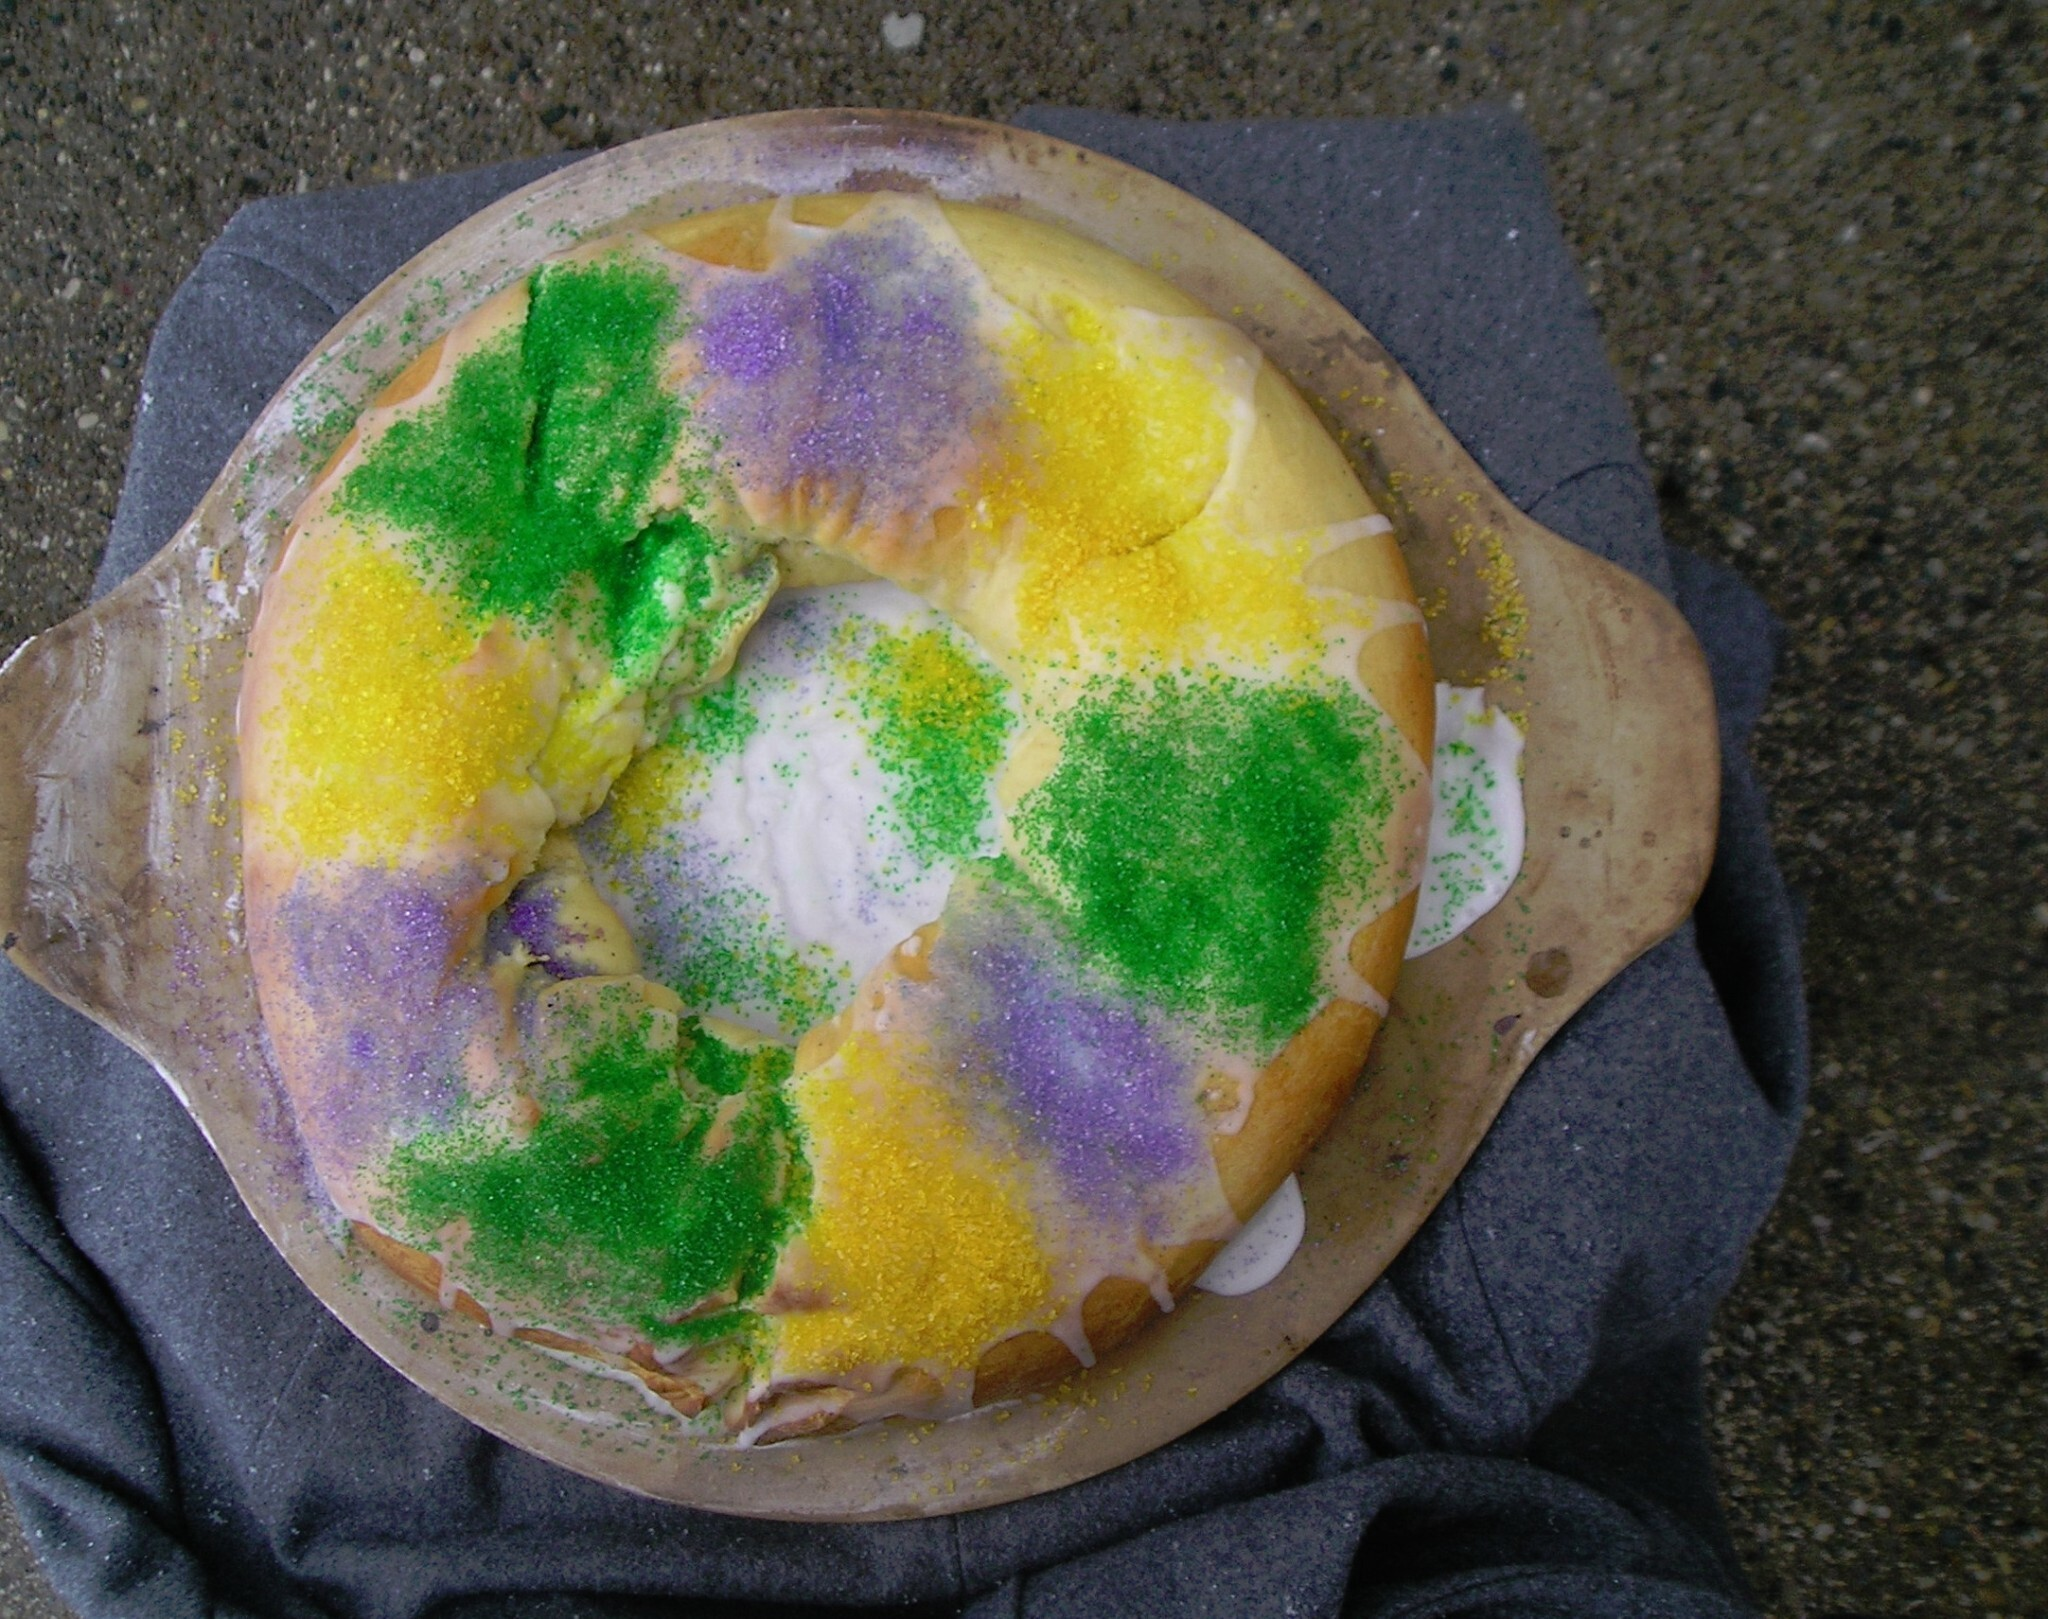 King Cake for Epiphany or Mardi Gras